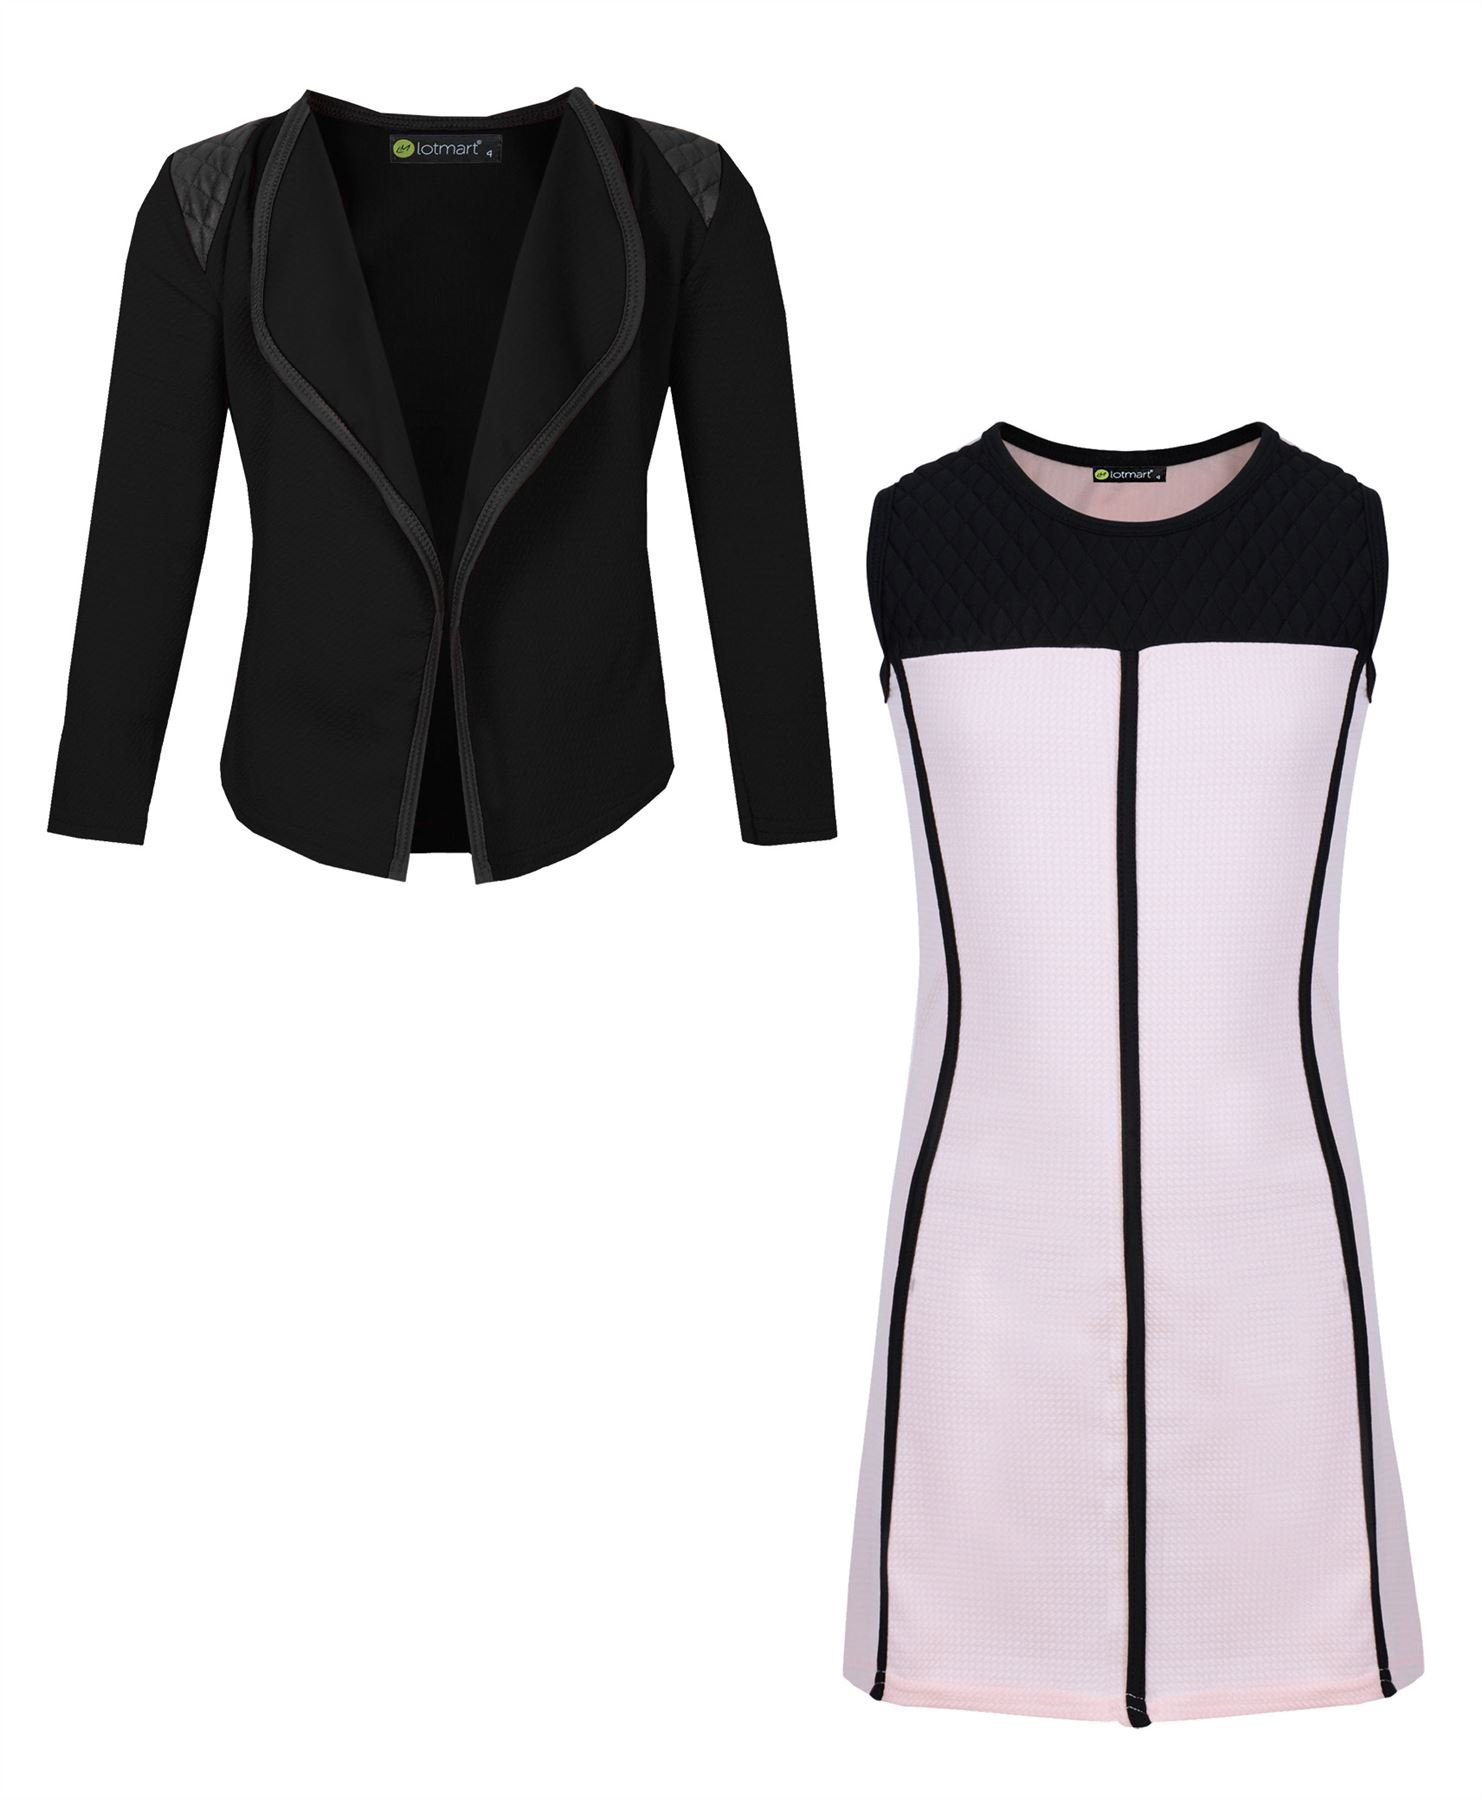 LotMart Girls Piping Dress and Blazer Bundle (Pack of 2) in Peach and Black 3-4 Years